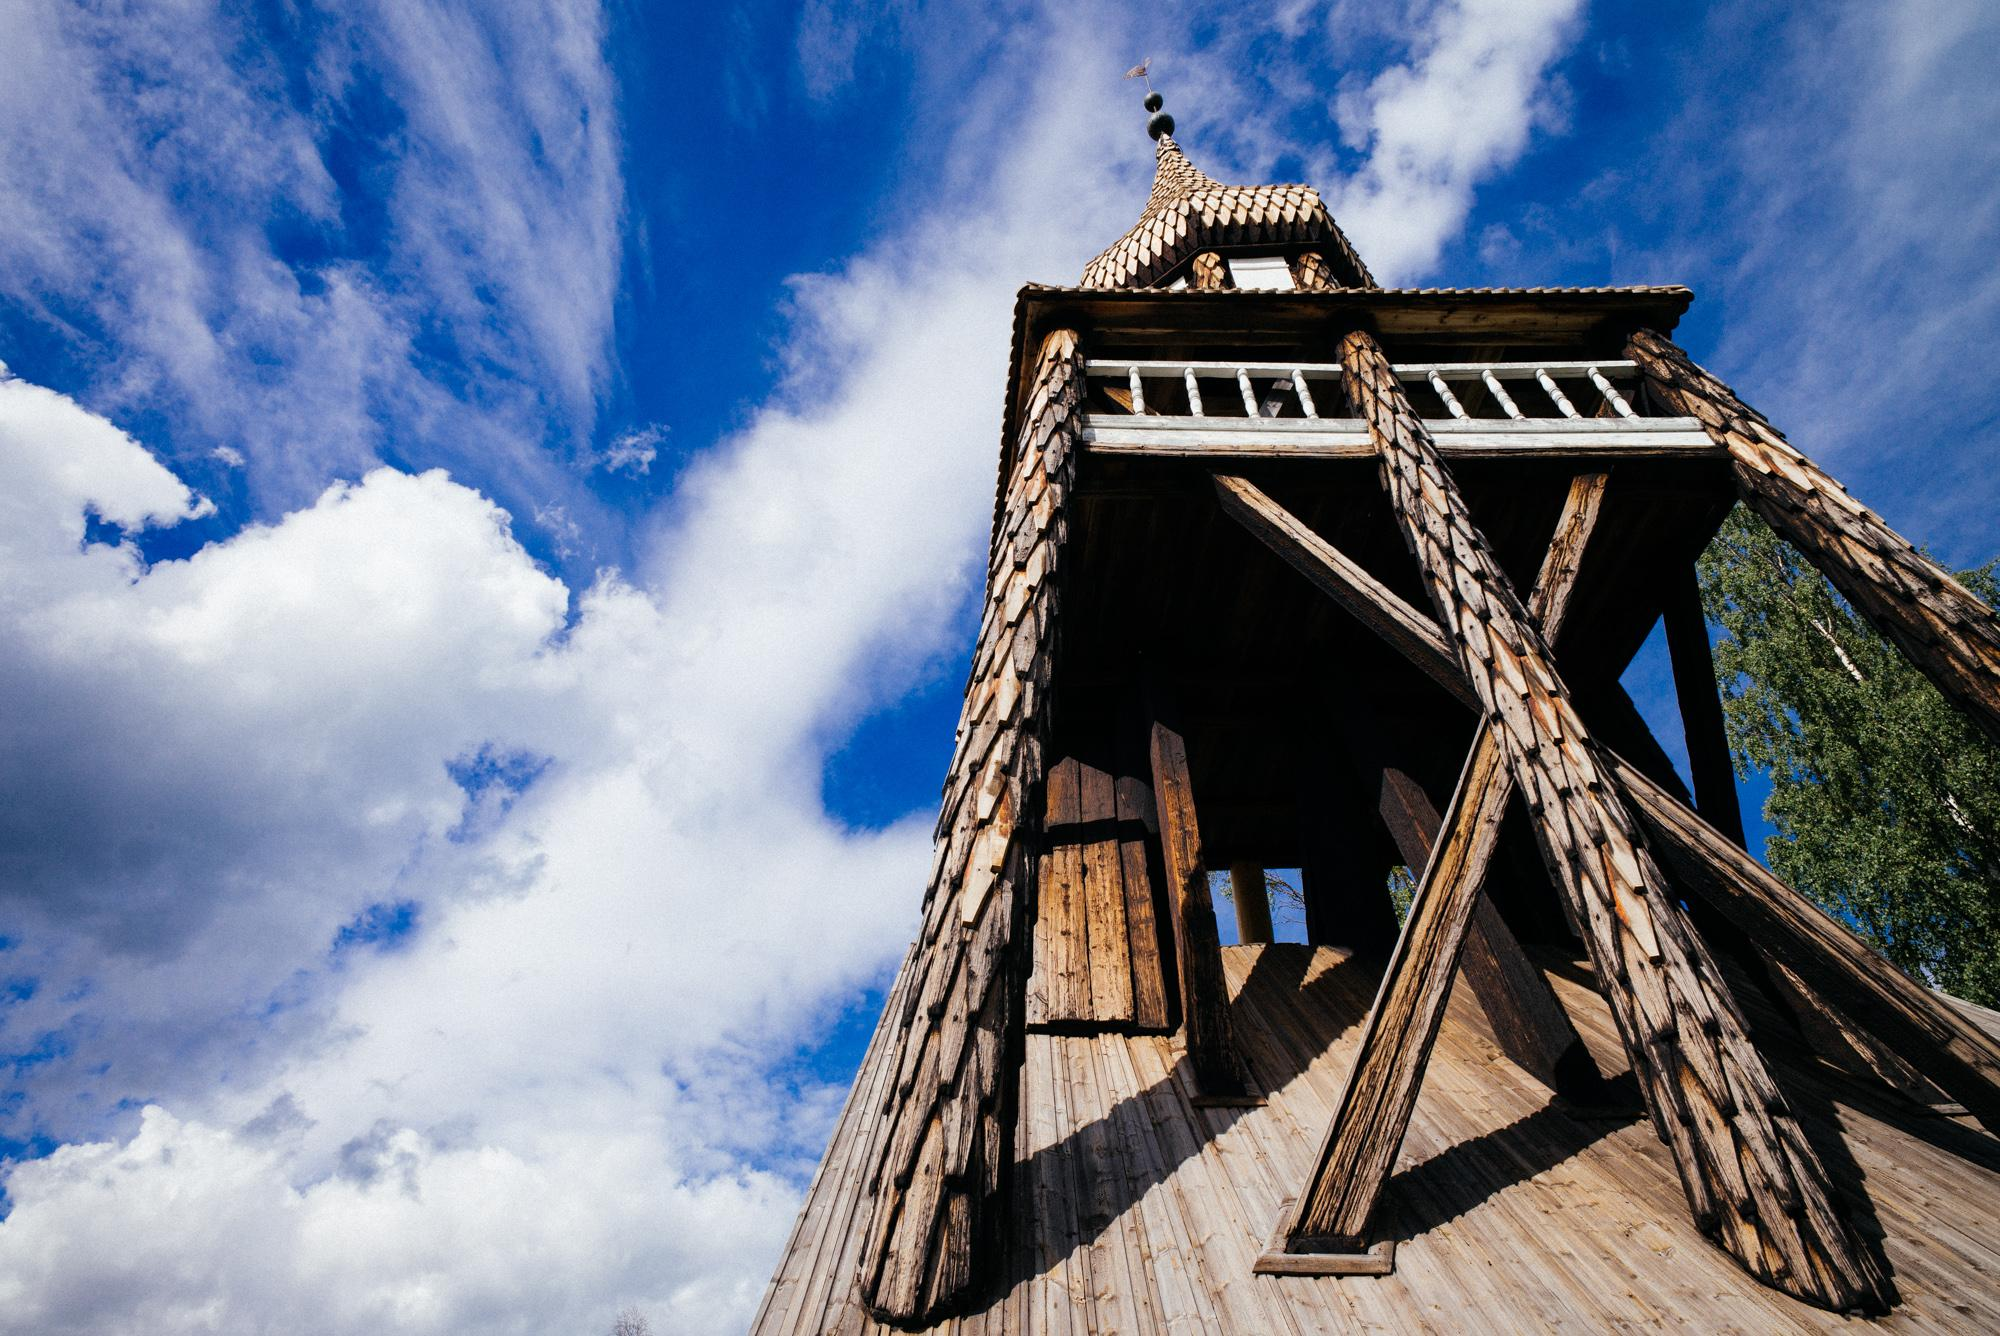 Another chapel bell tower